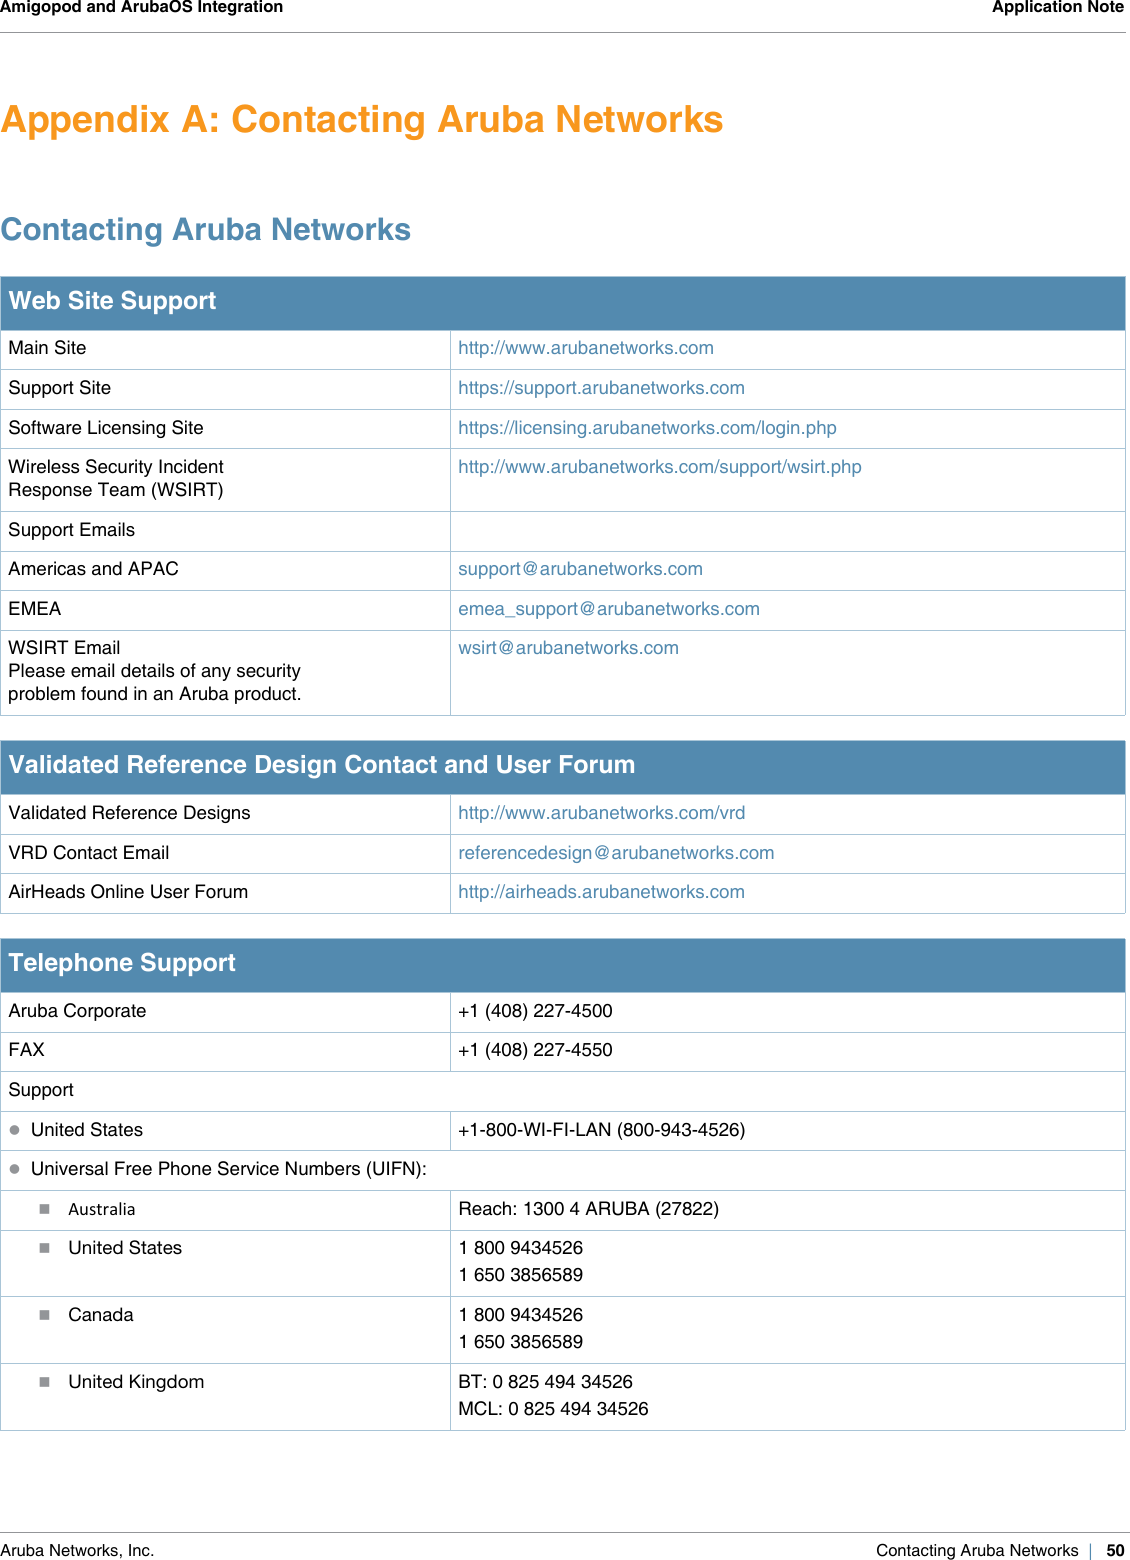 Dell Powerconnect W Clearpass 100 Software Integration Guide